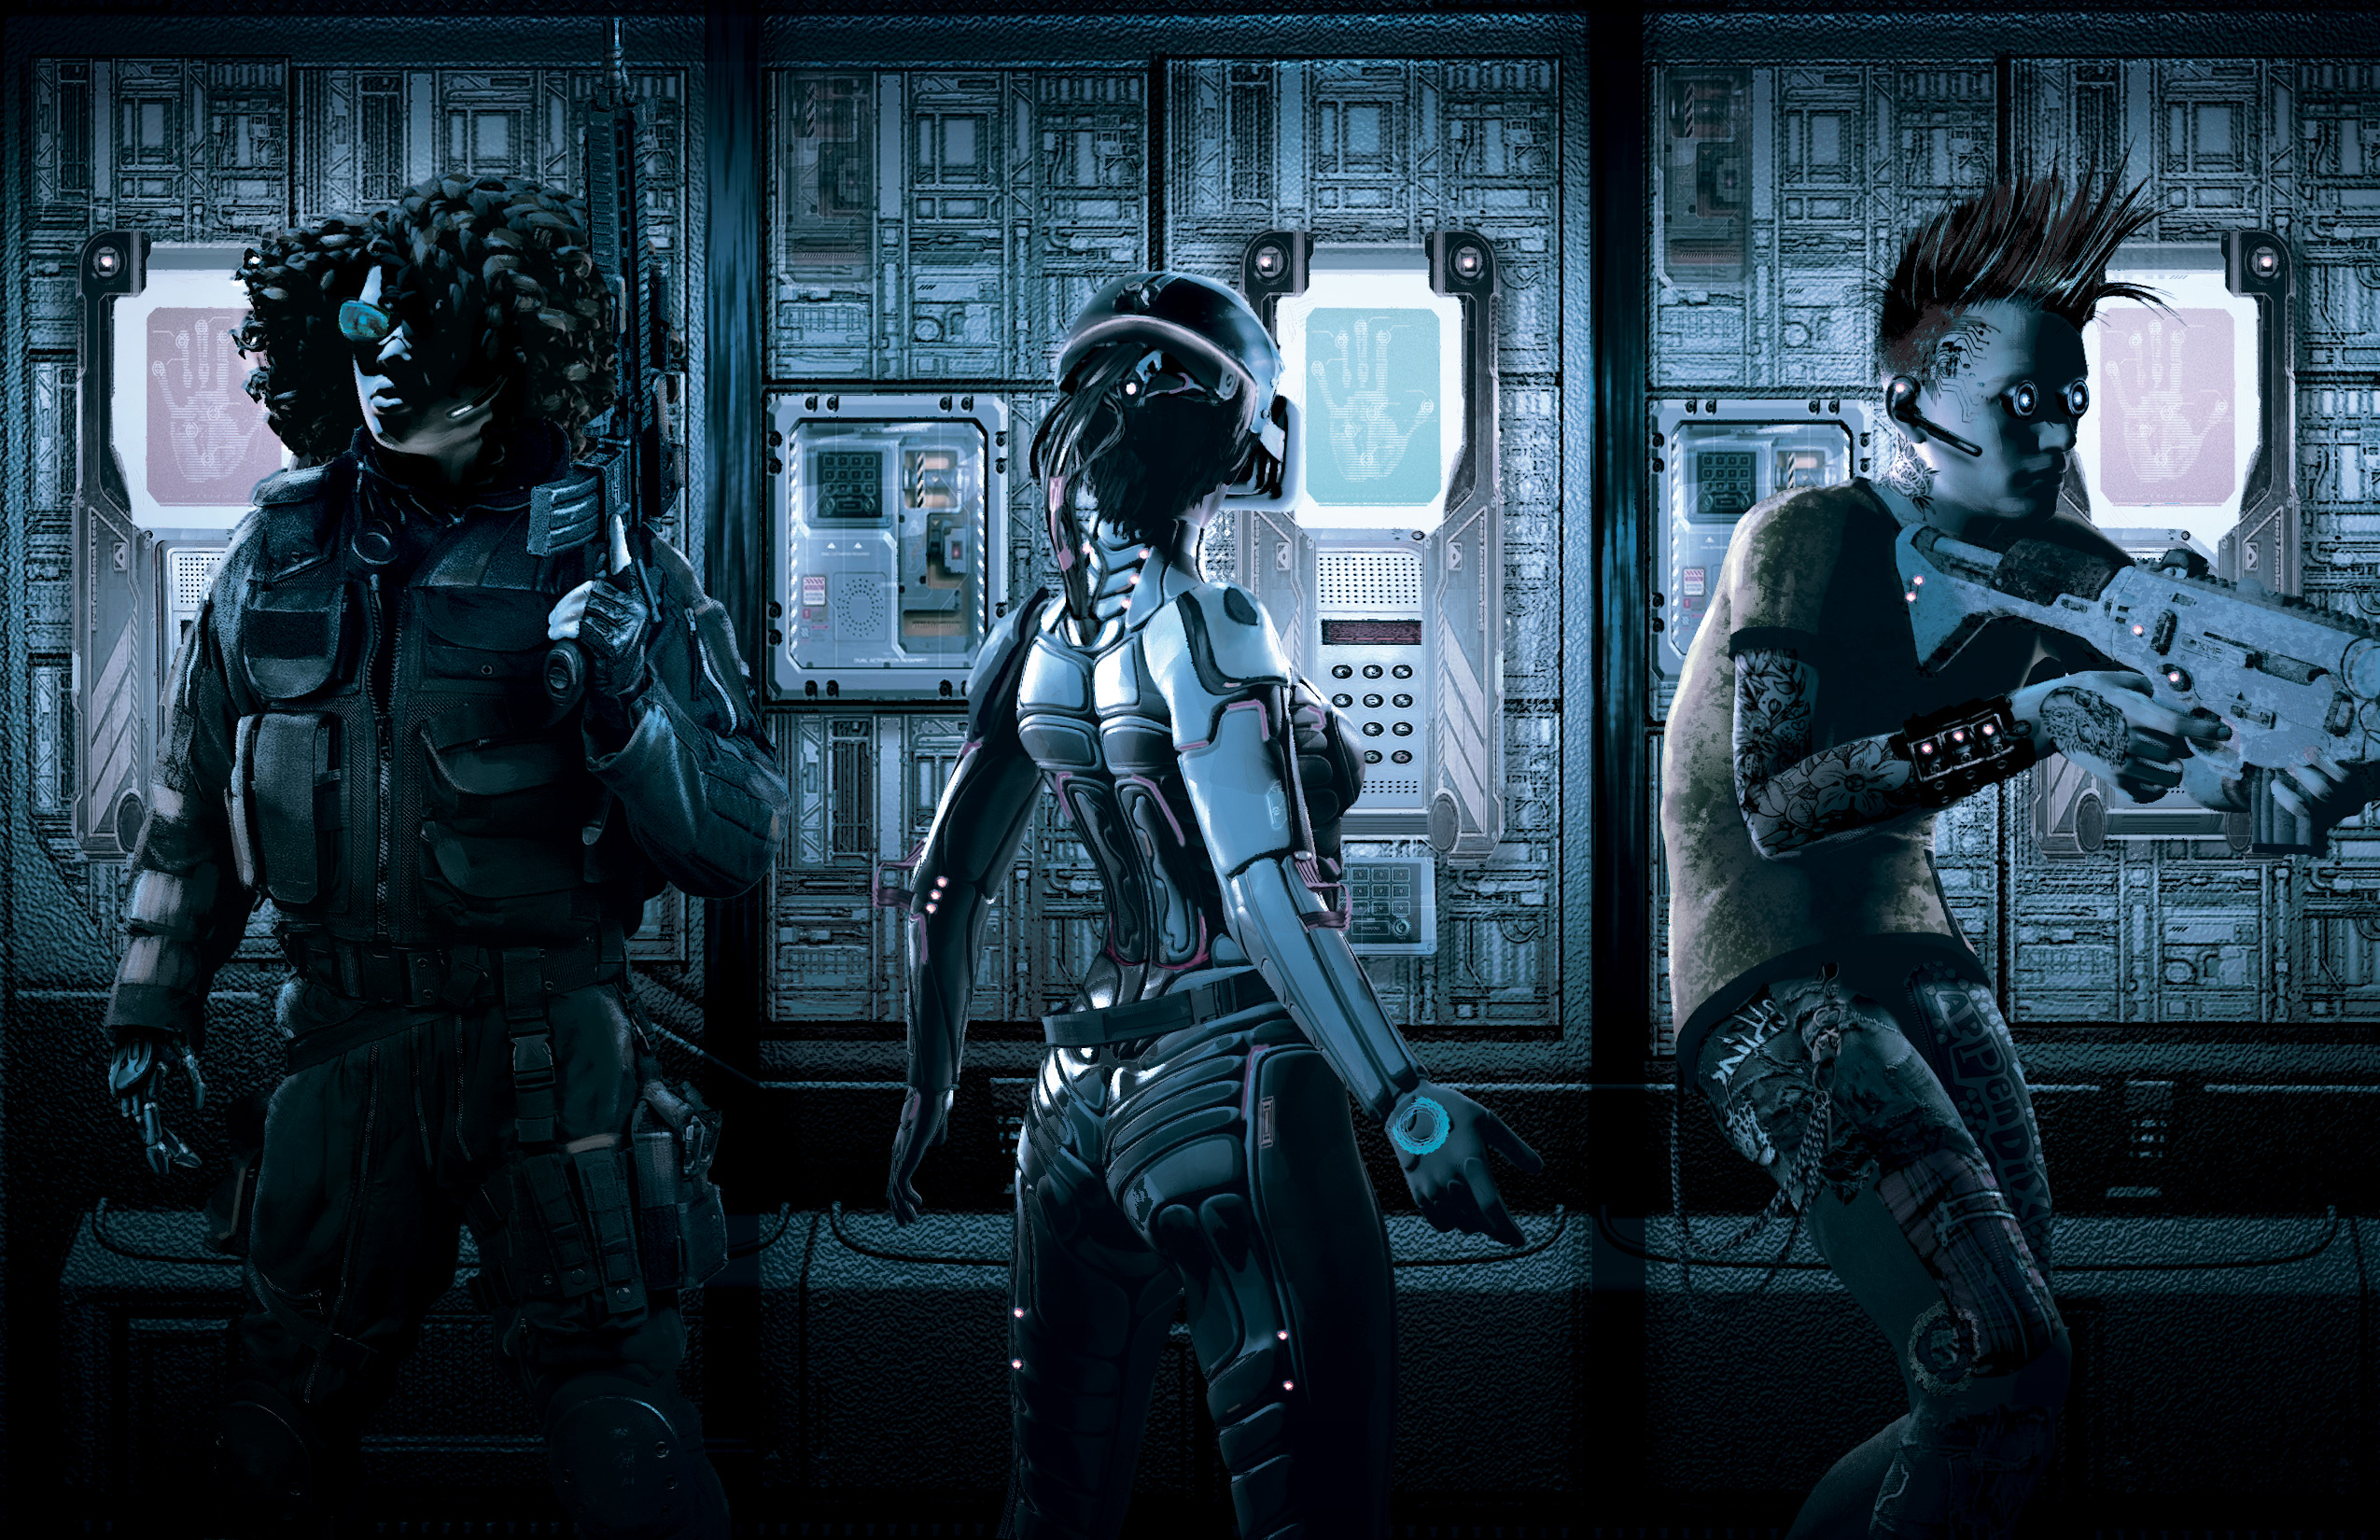 Three edgerunners cautiously make their way down a corridor during an infiltration mission.